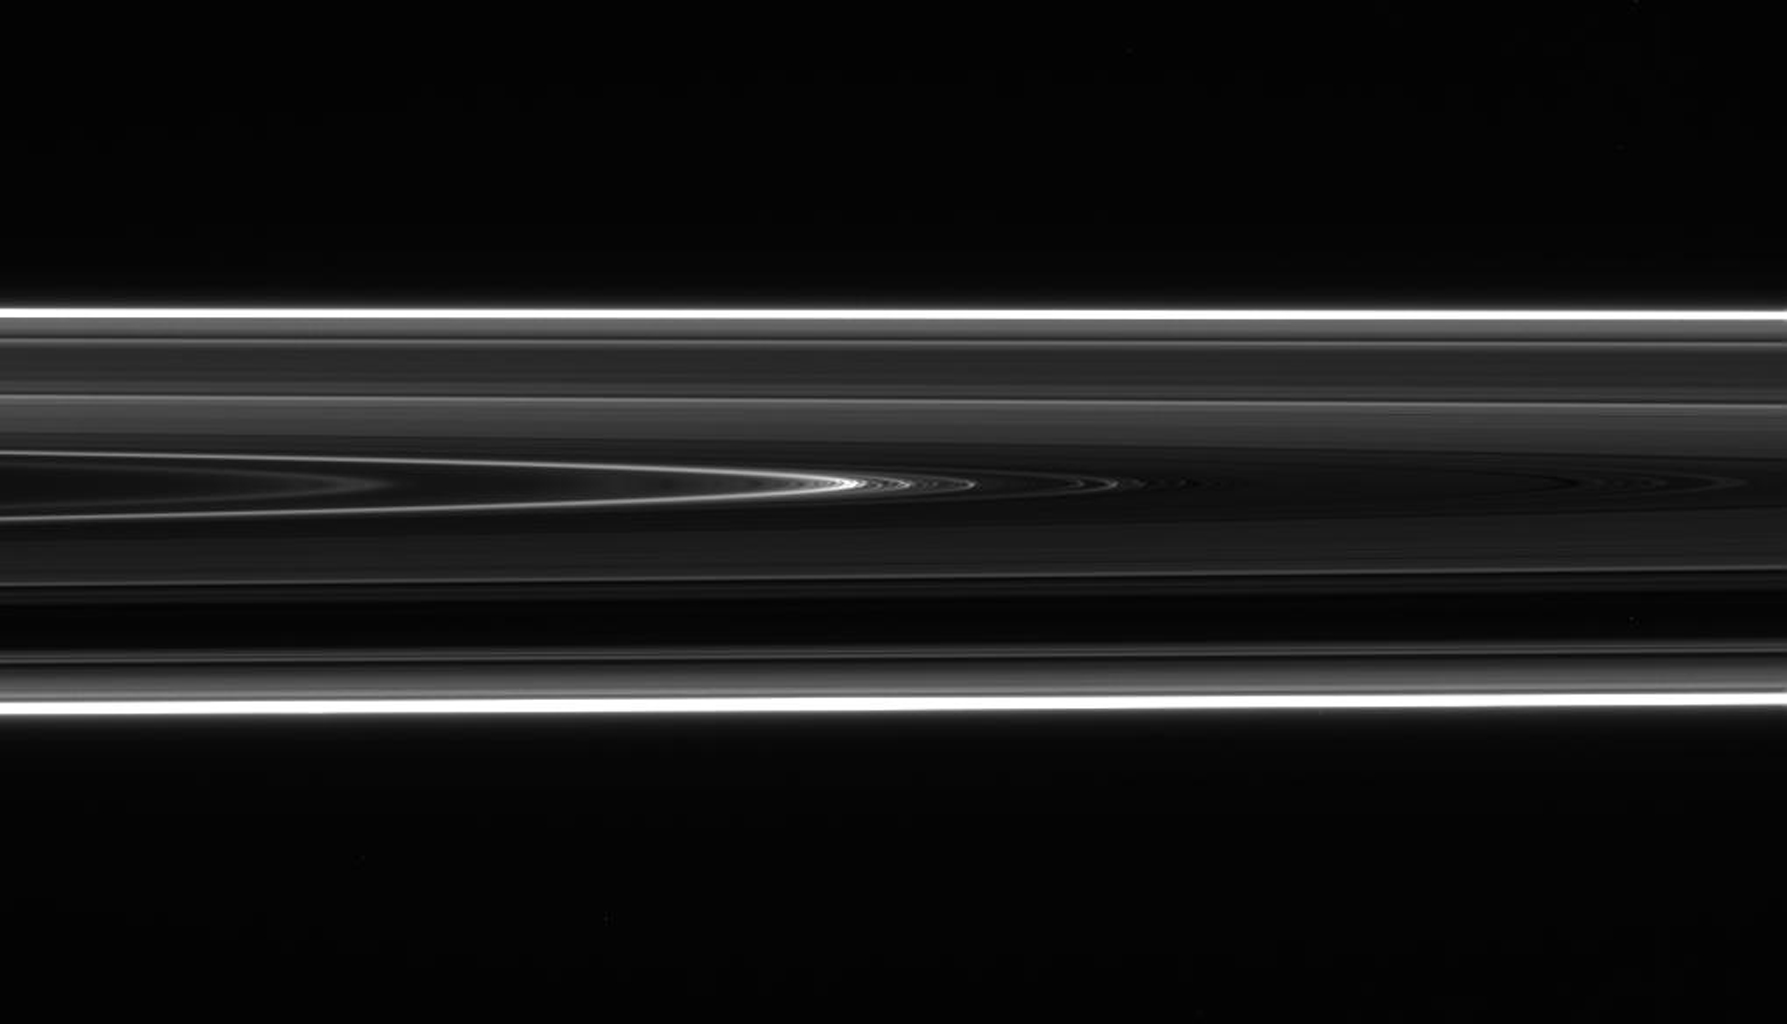 Saturn's D ring--the innermost of the planet's rings -- sports an intriguing structure that appears to be a wavy, or 'vertically corrugated,' spiral as seen by NASA's Cassini spacecraft.